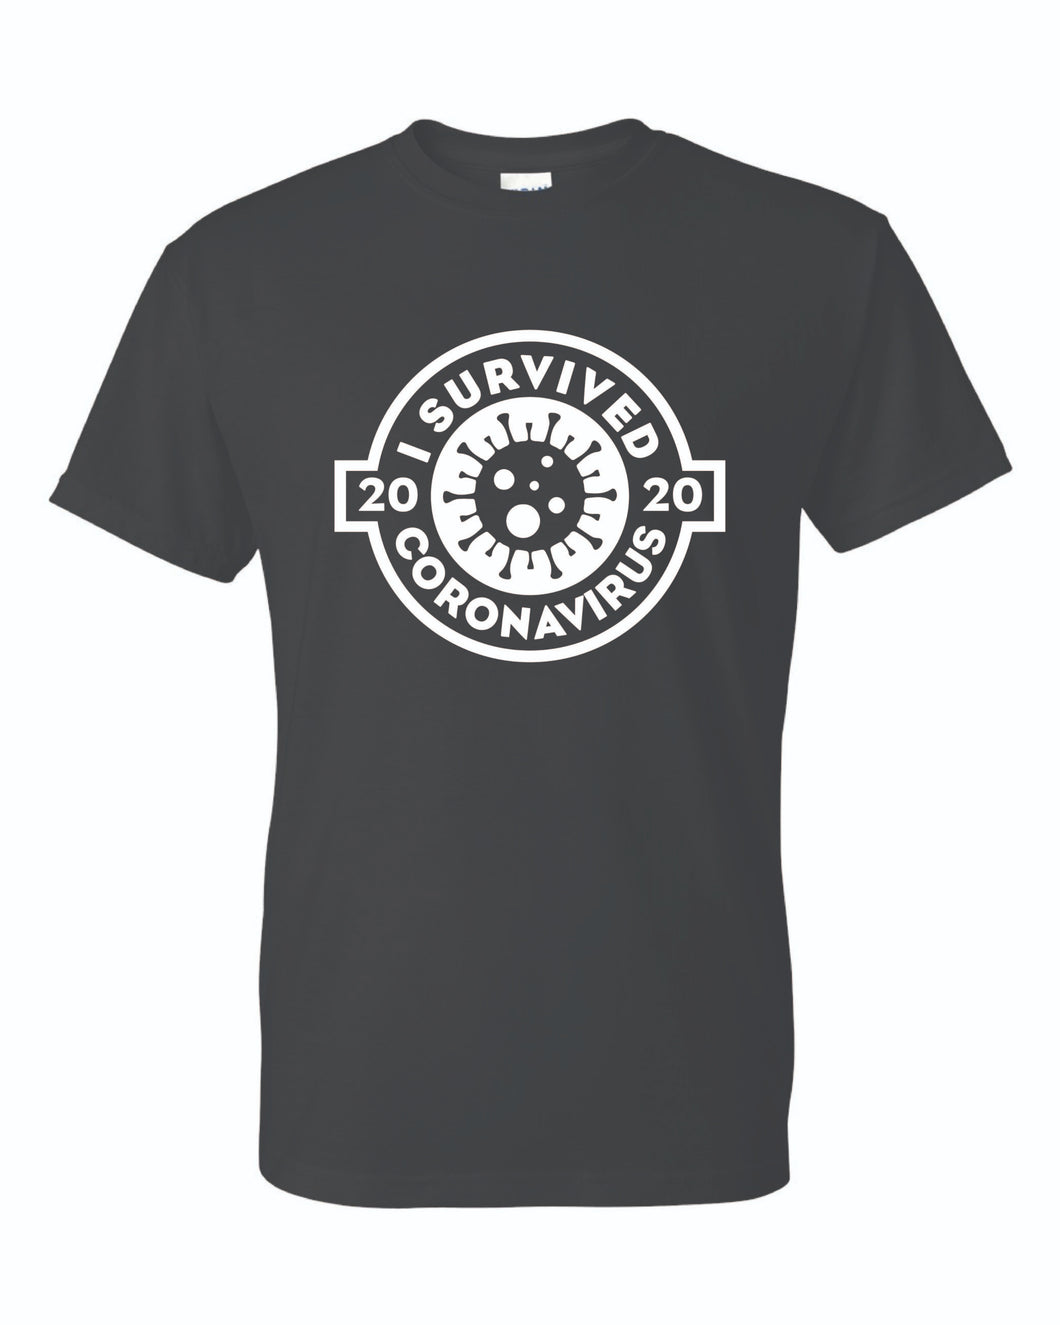 Peacock's - I survived Coronavirus 2020 Short Sleeve T-shirt